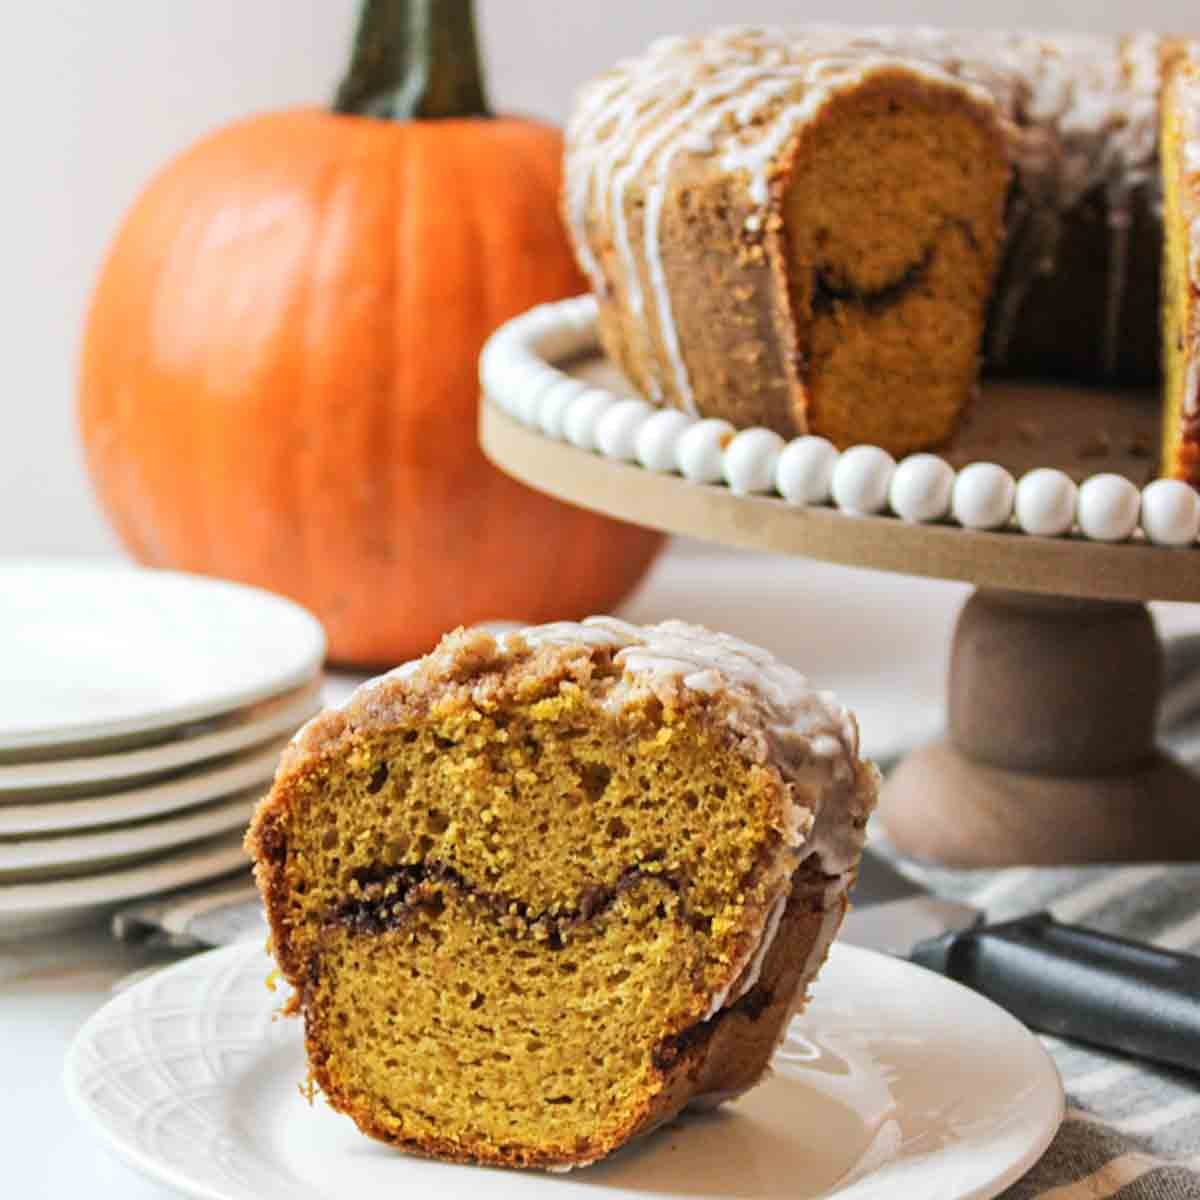 a slice of pumpkin coffee cake up close with more cake and a pumpkin in the background